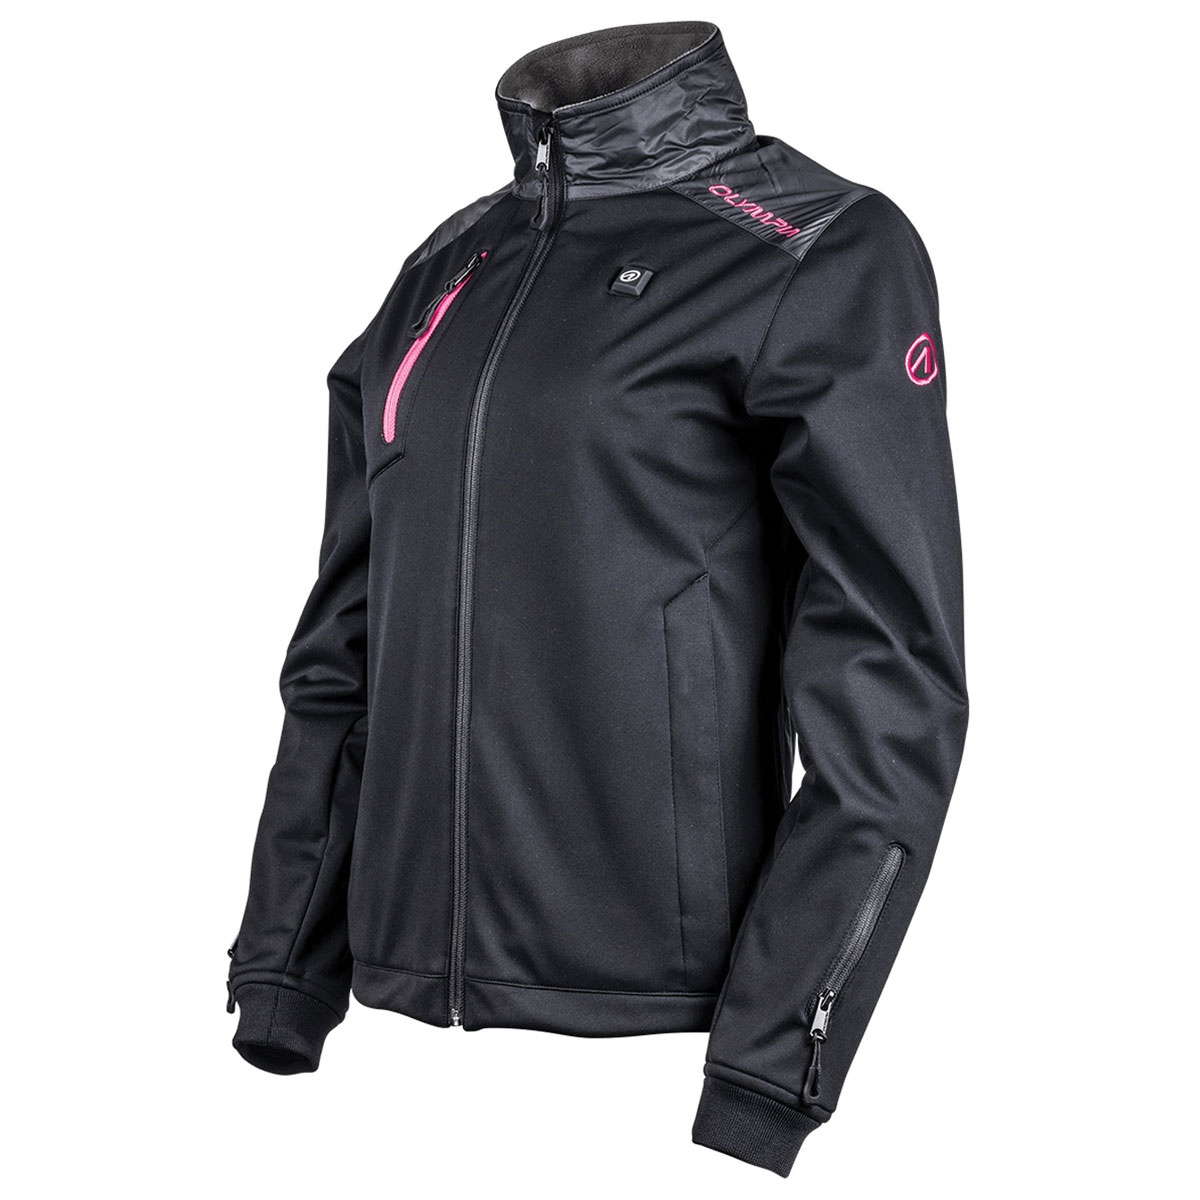 Olympia Moto Sports Women's North Bay Heated Black Textile Jacket